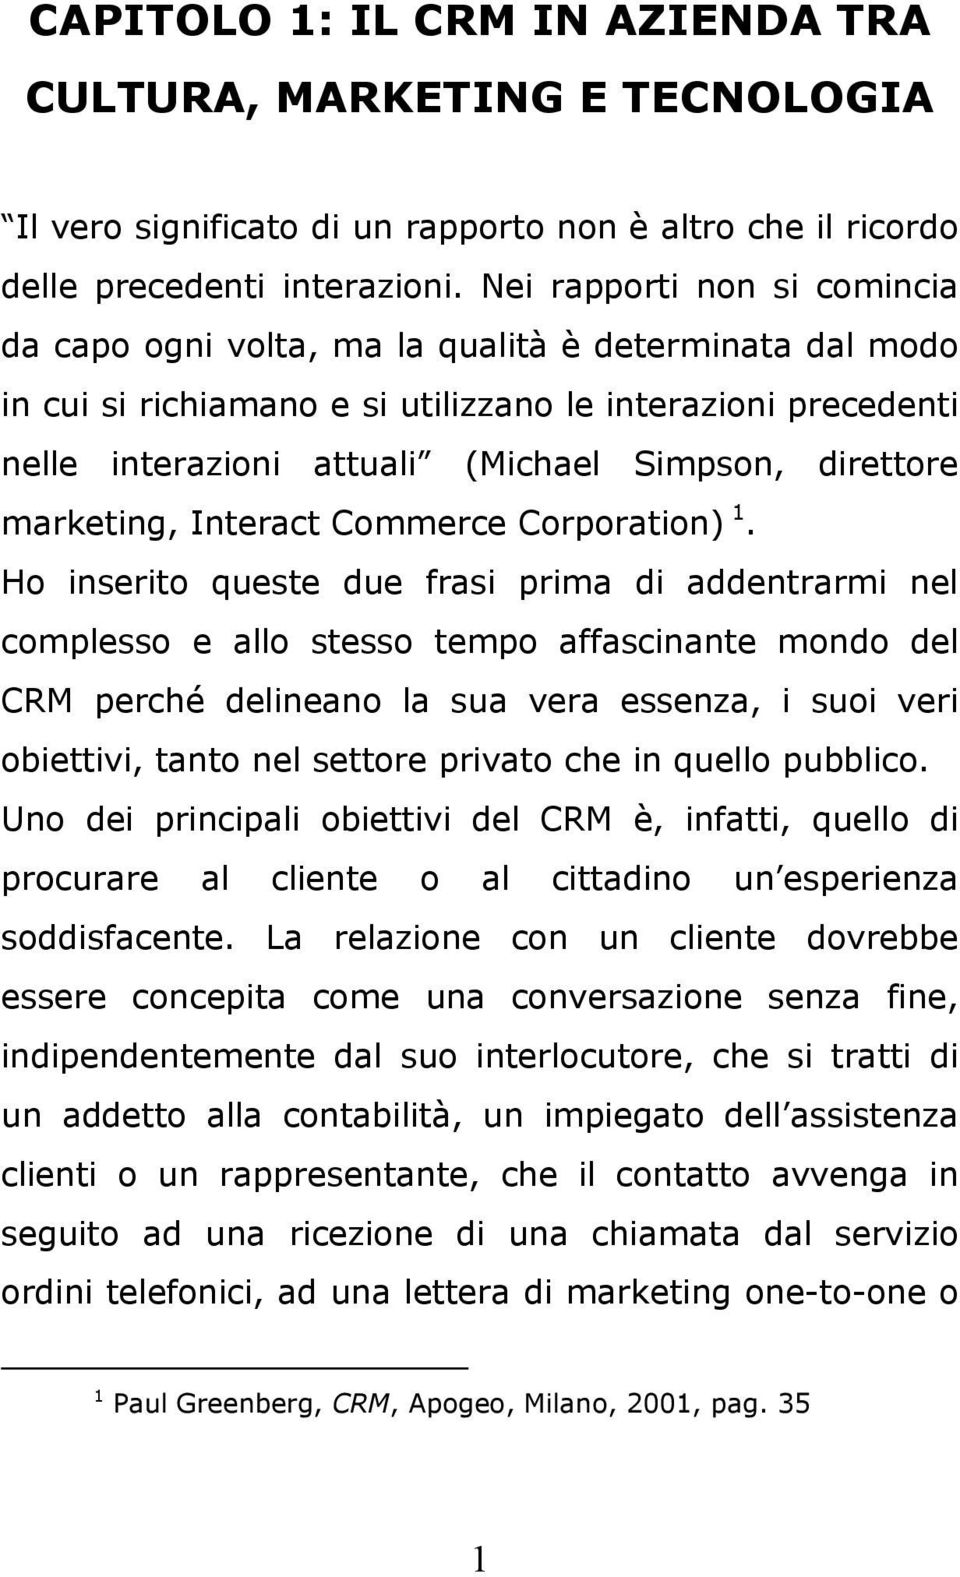 direttore marketing, Interact Commerce Corporation) 1.